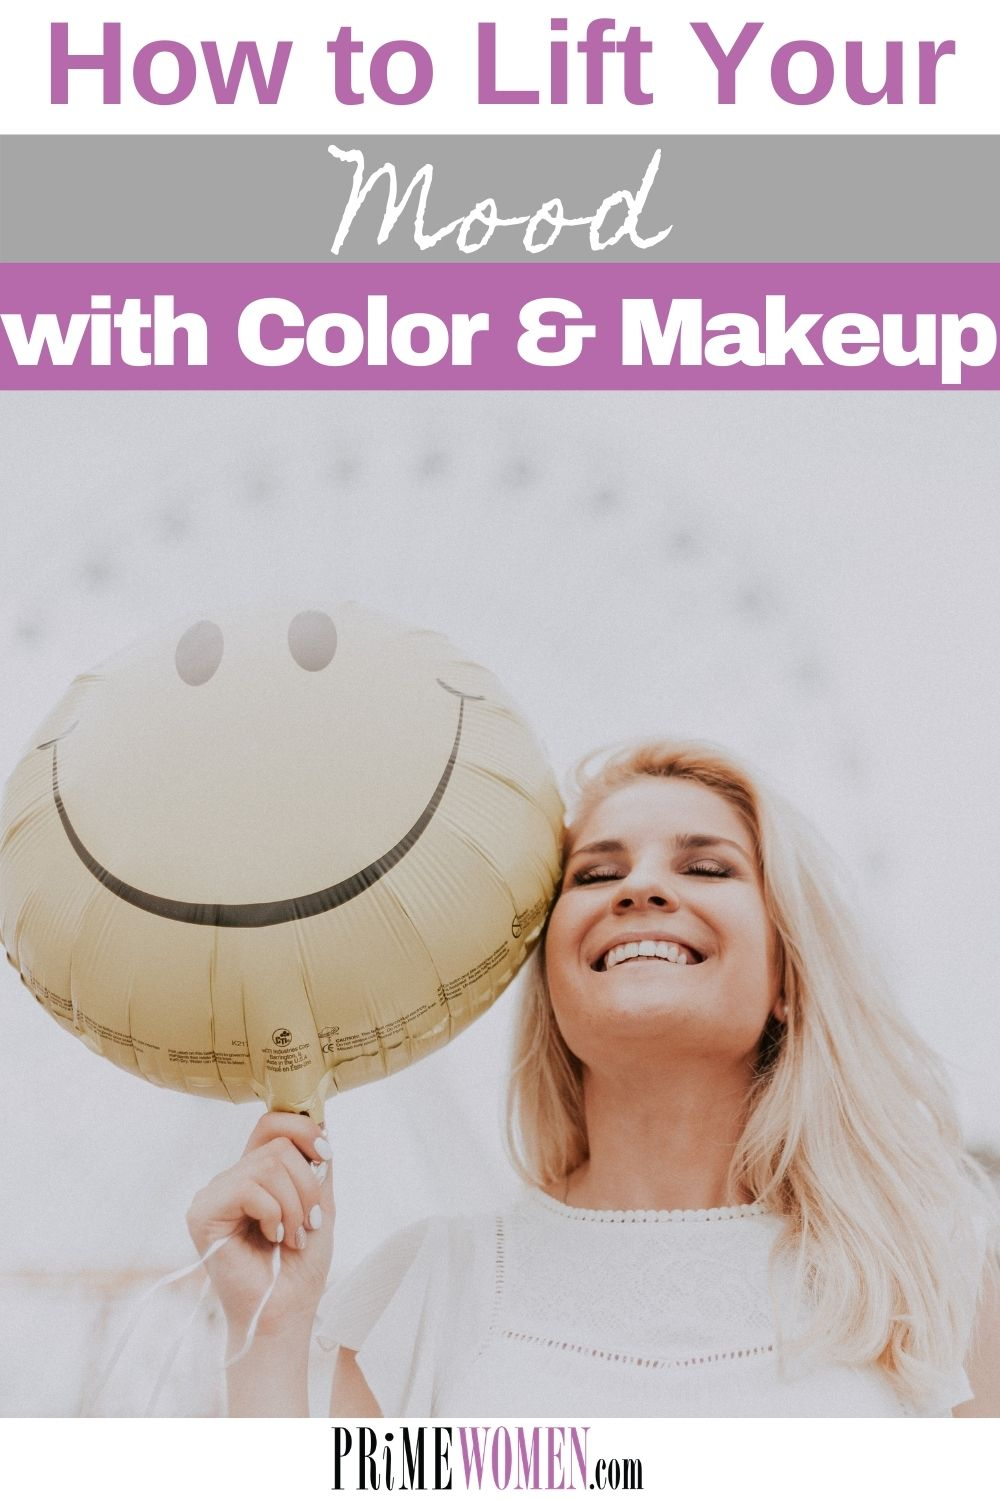 How to lift your mood with color and makeup.